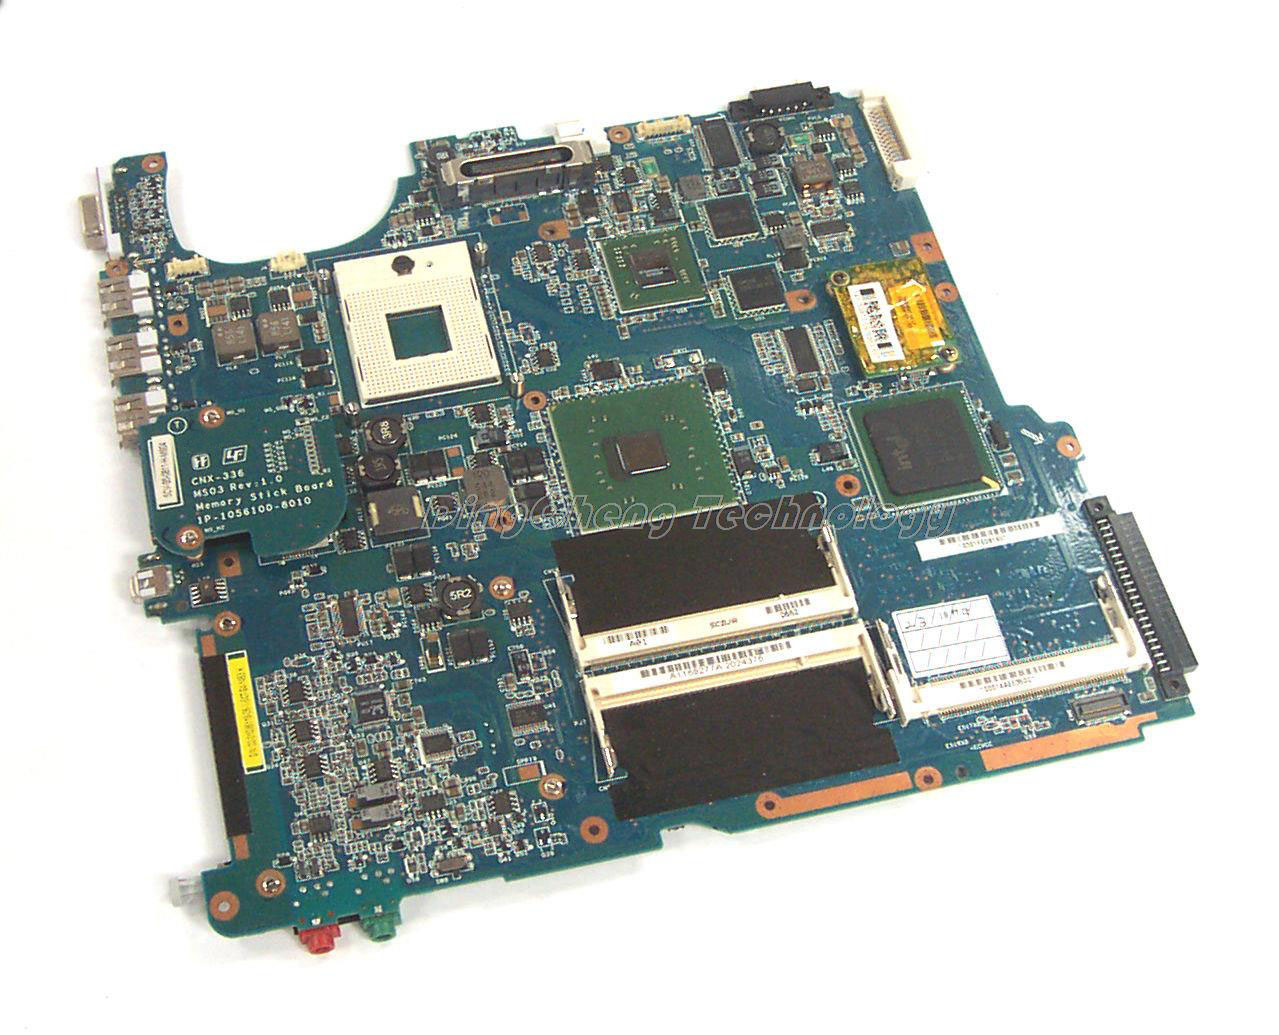 SHELI MBX 143 laptop Motherboard For Sony MBX-143 MS04-M/B A1168157A 1P-0058100-8012 non-integrated graphics card mbx 265 for sony svt13 motherboard with cpu i3 3217u 2gb memory pc motherboard professional wholesale 100